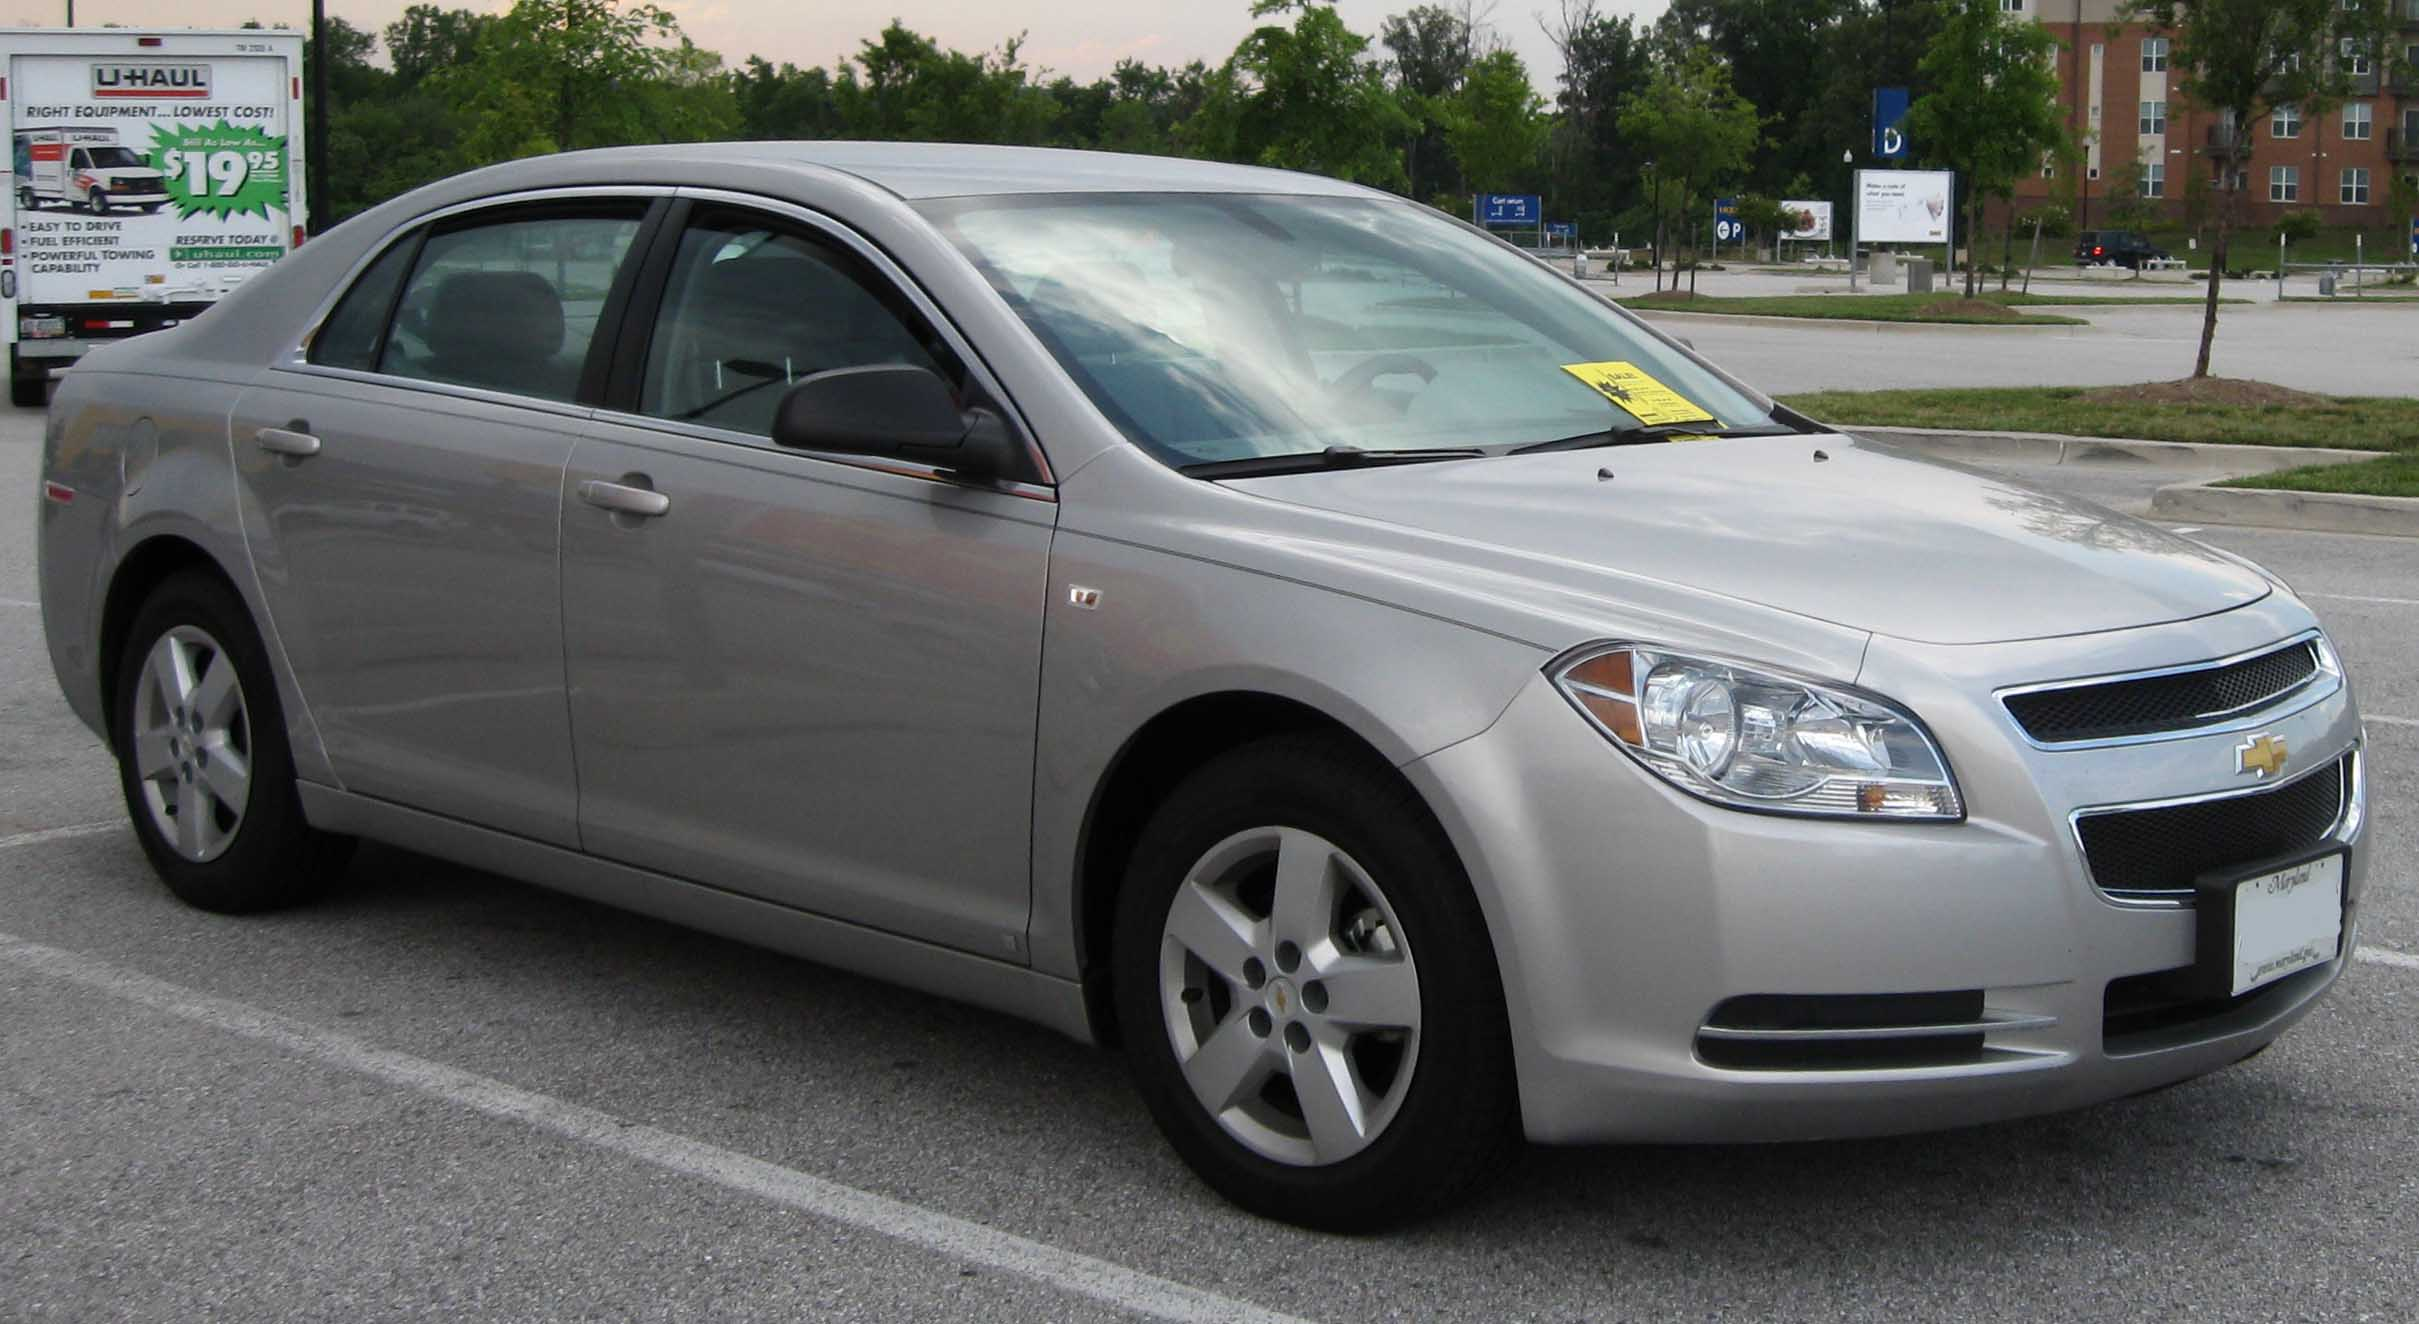 file 2008 chevrolet malibu wikimedia commons. Cars Review. Best American Auto & Cars Review